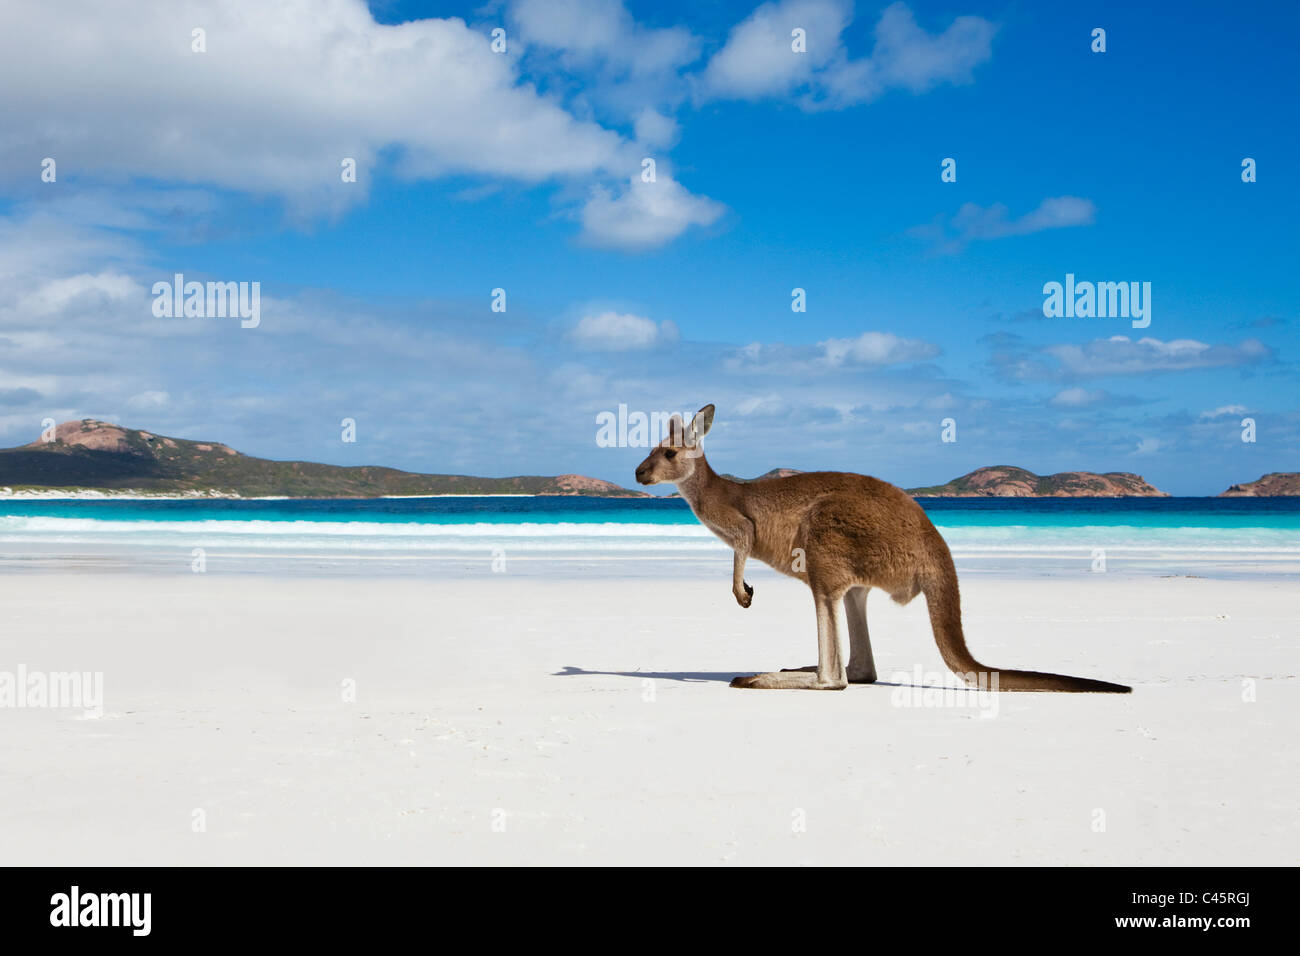 Sur Kangaroo beach à Lucky Bay. Cape Le Grand National Park, Esperance, Western Australia, AustraliaBanque D'Images